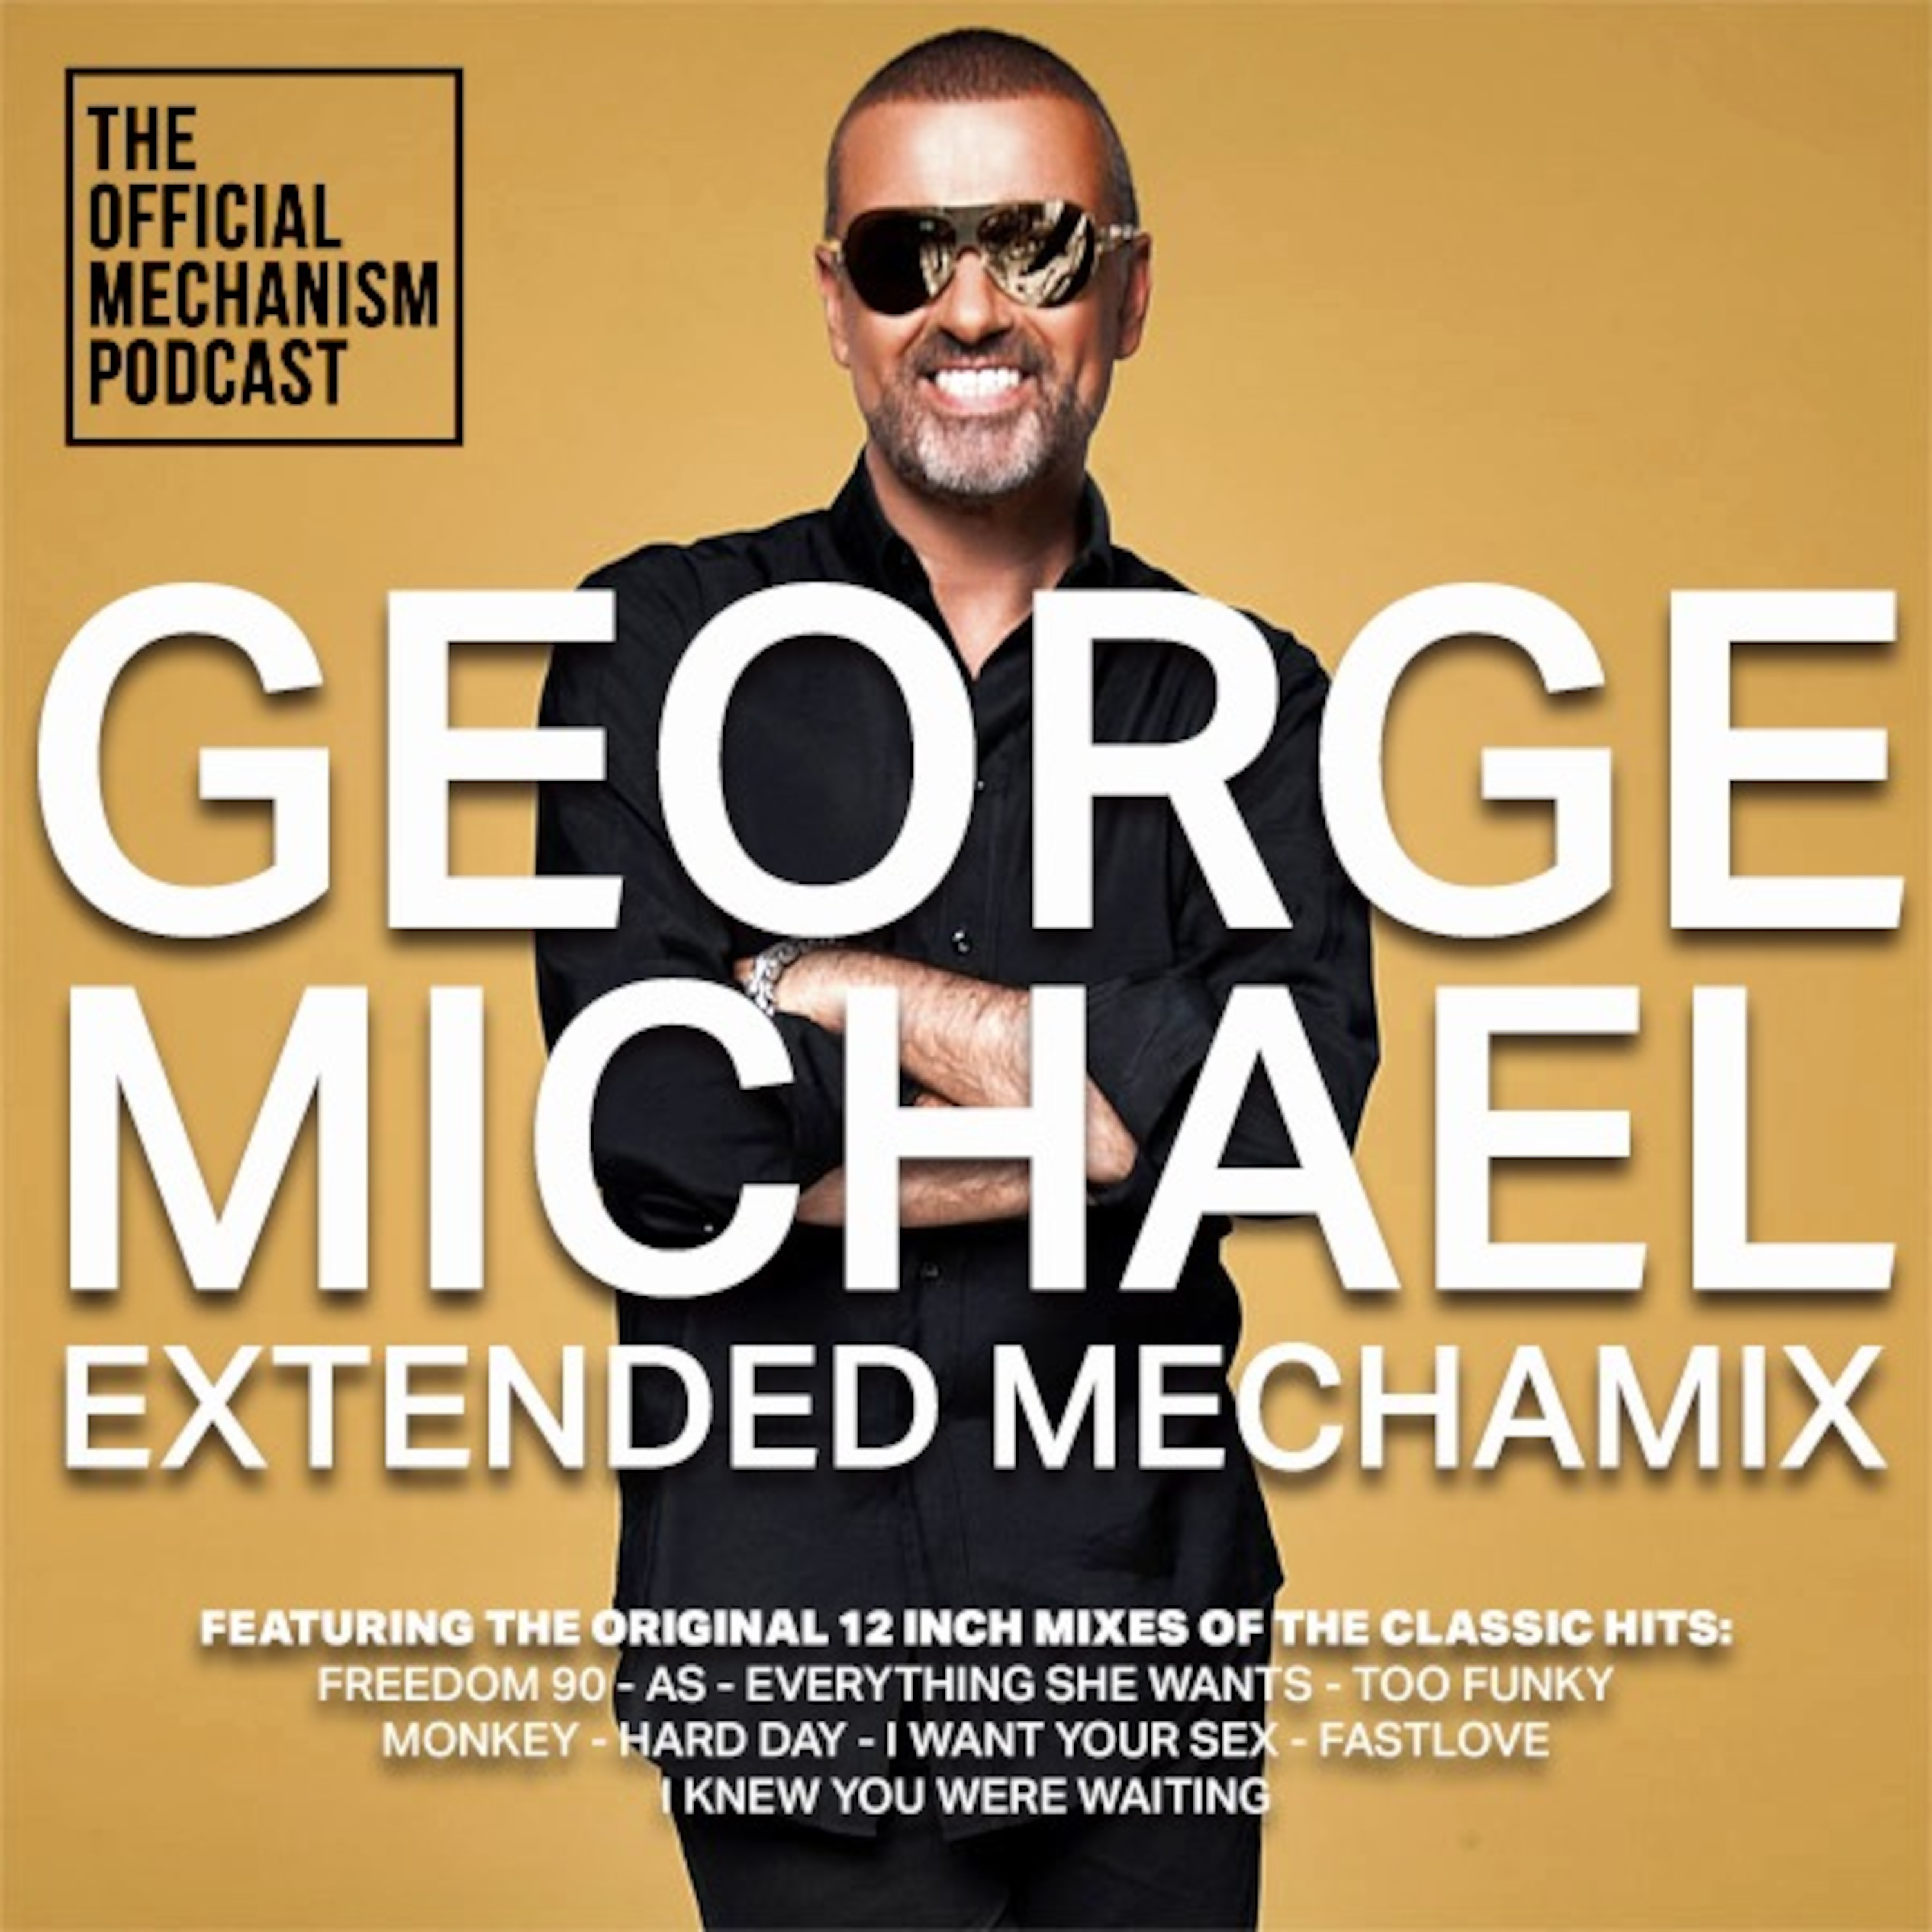 889 - GEORGE MICHAEL EXTENDED MECHAMIX THE OFFICIAL